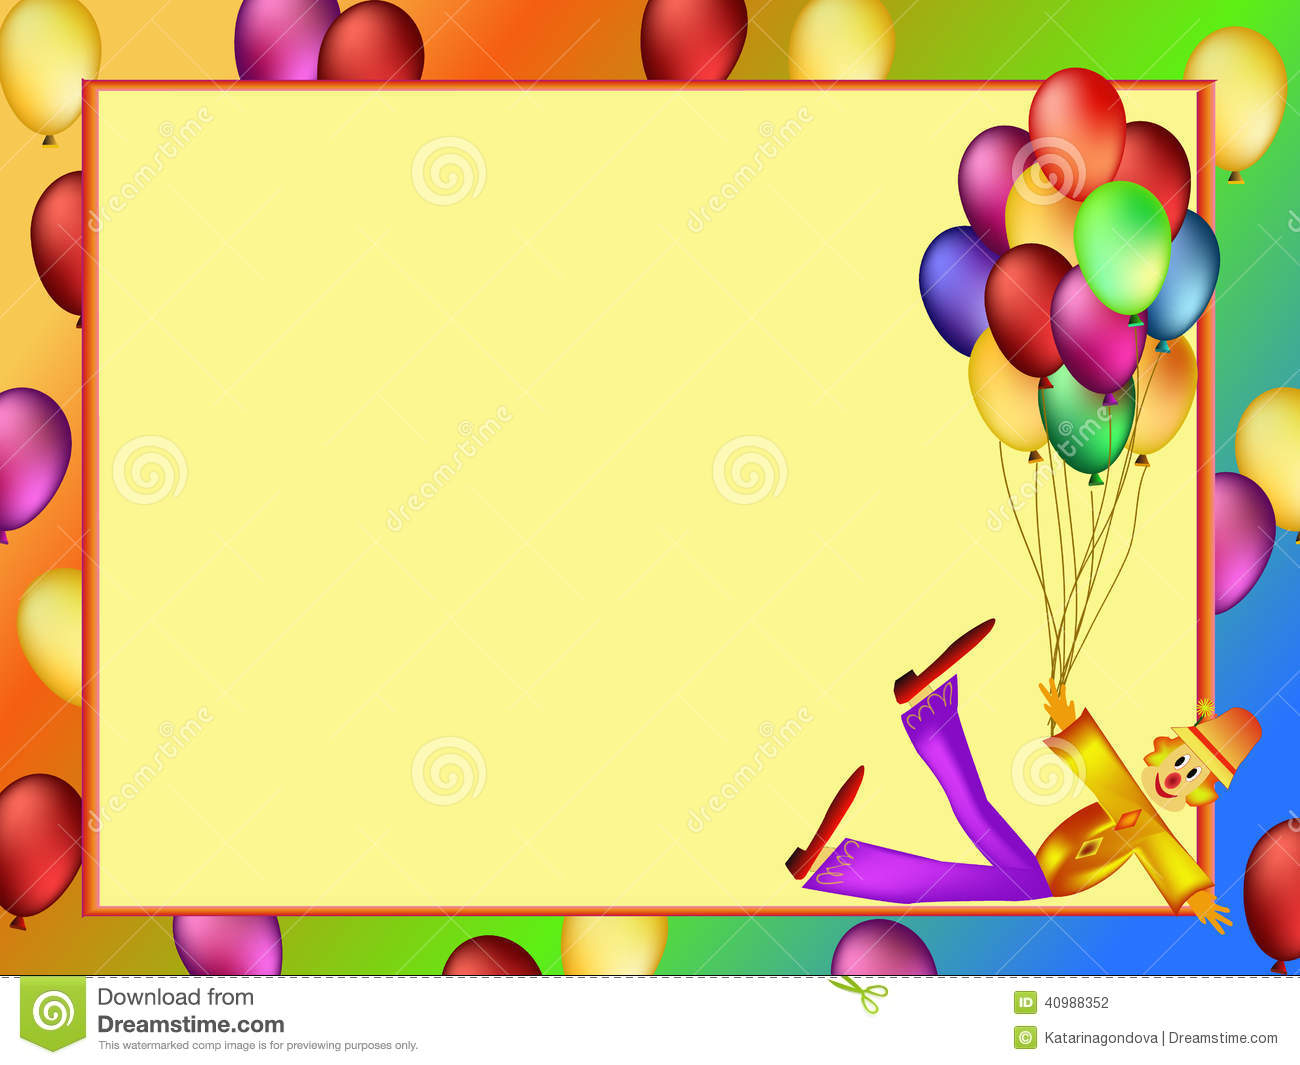 clip art clowns with balloons - photo #49